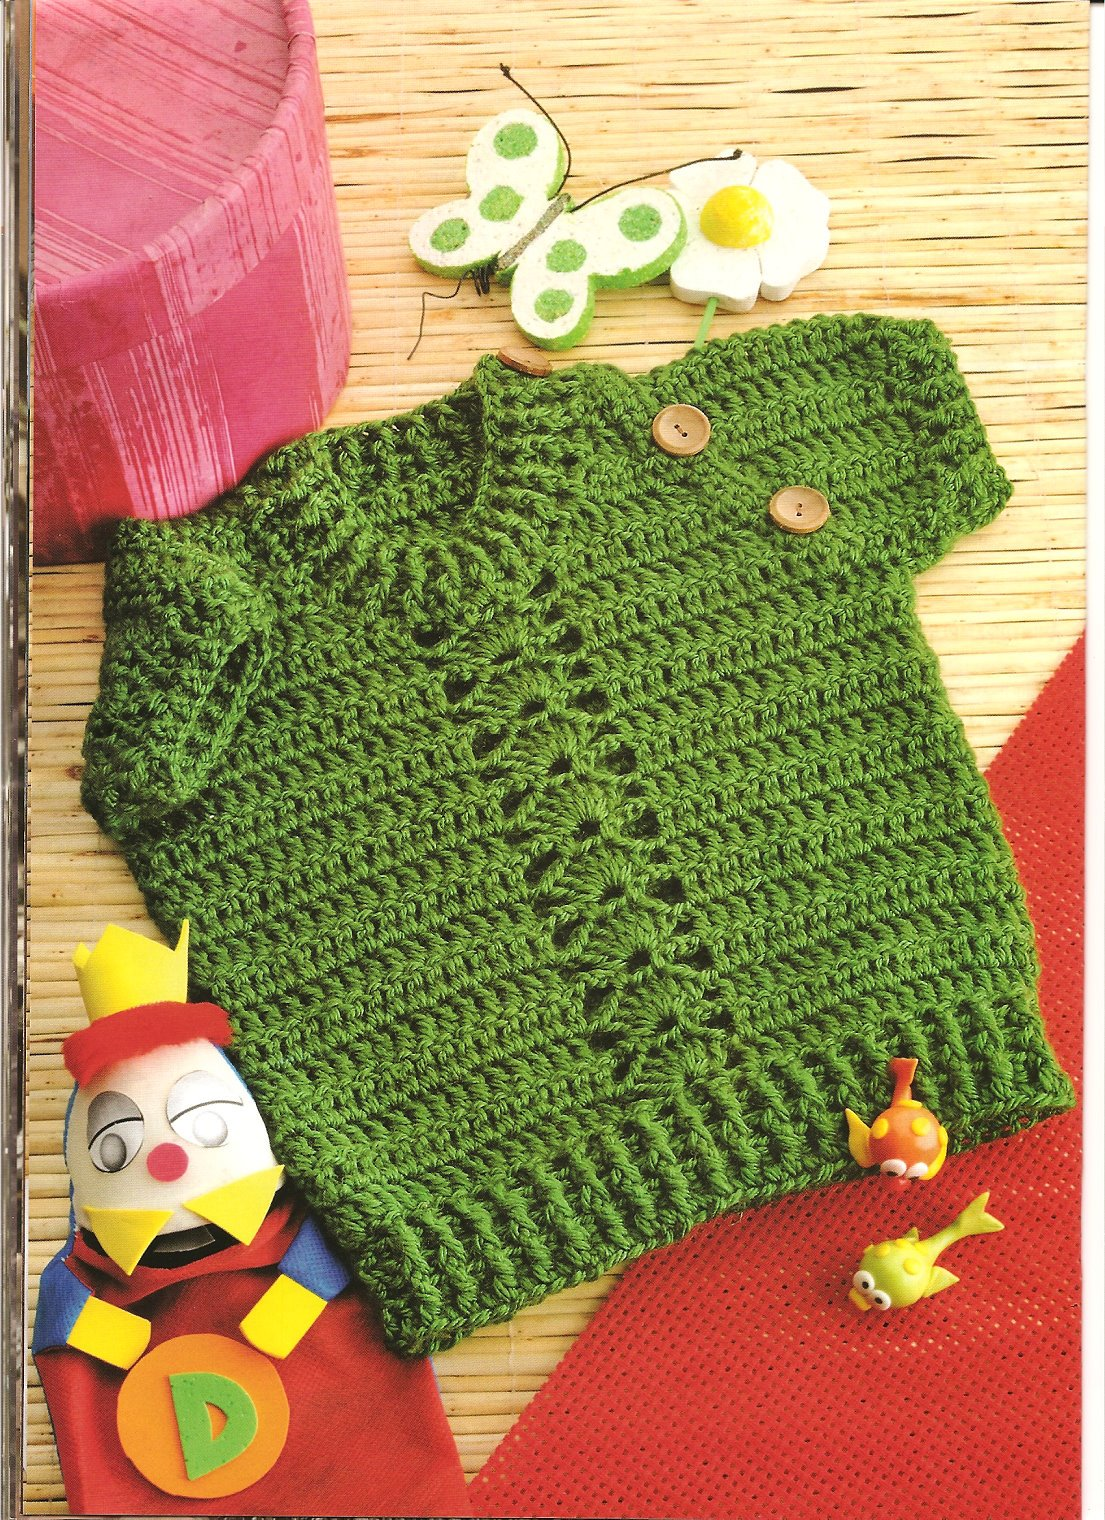 Camisa Verde Ganchillo Patron ⋆ Crochet Kingdom